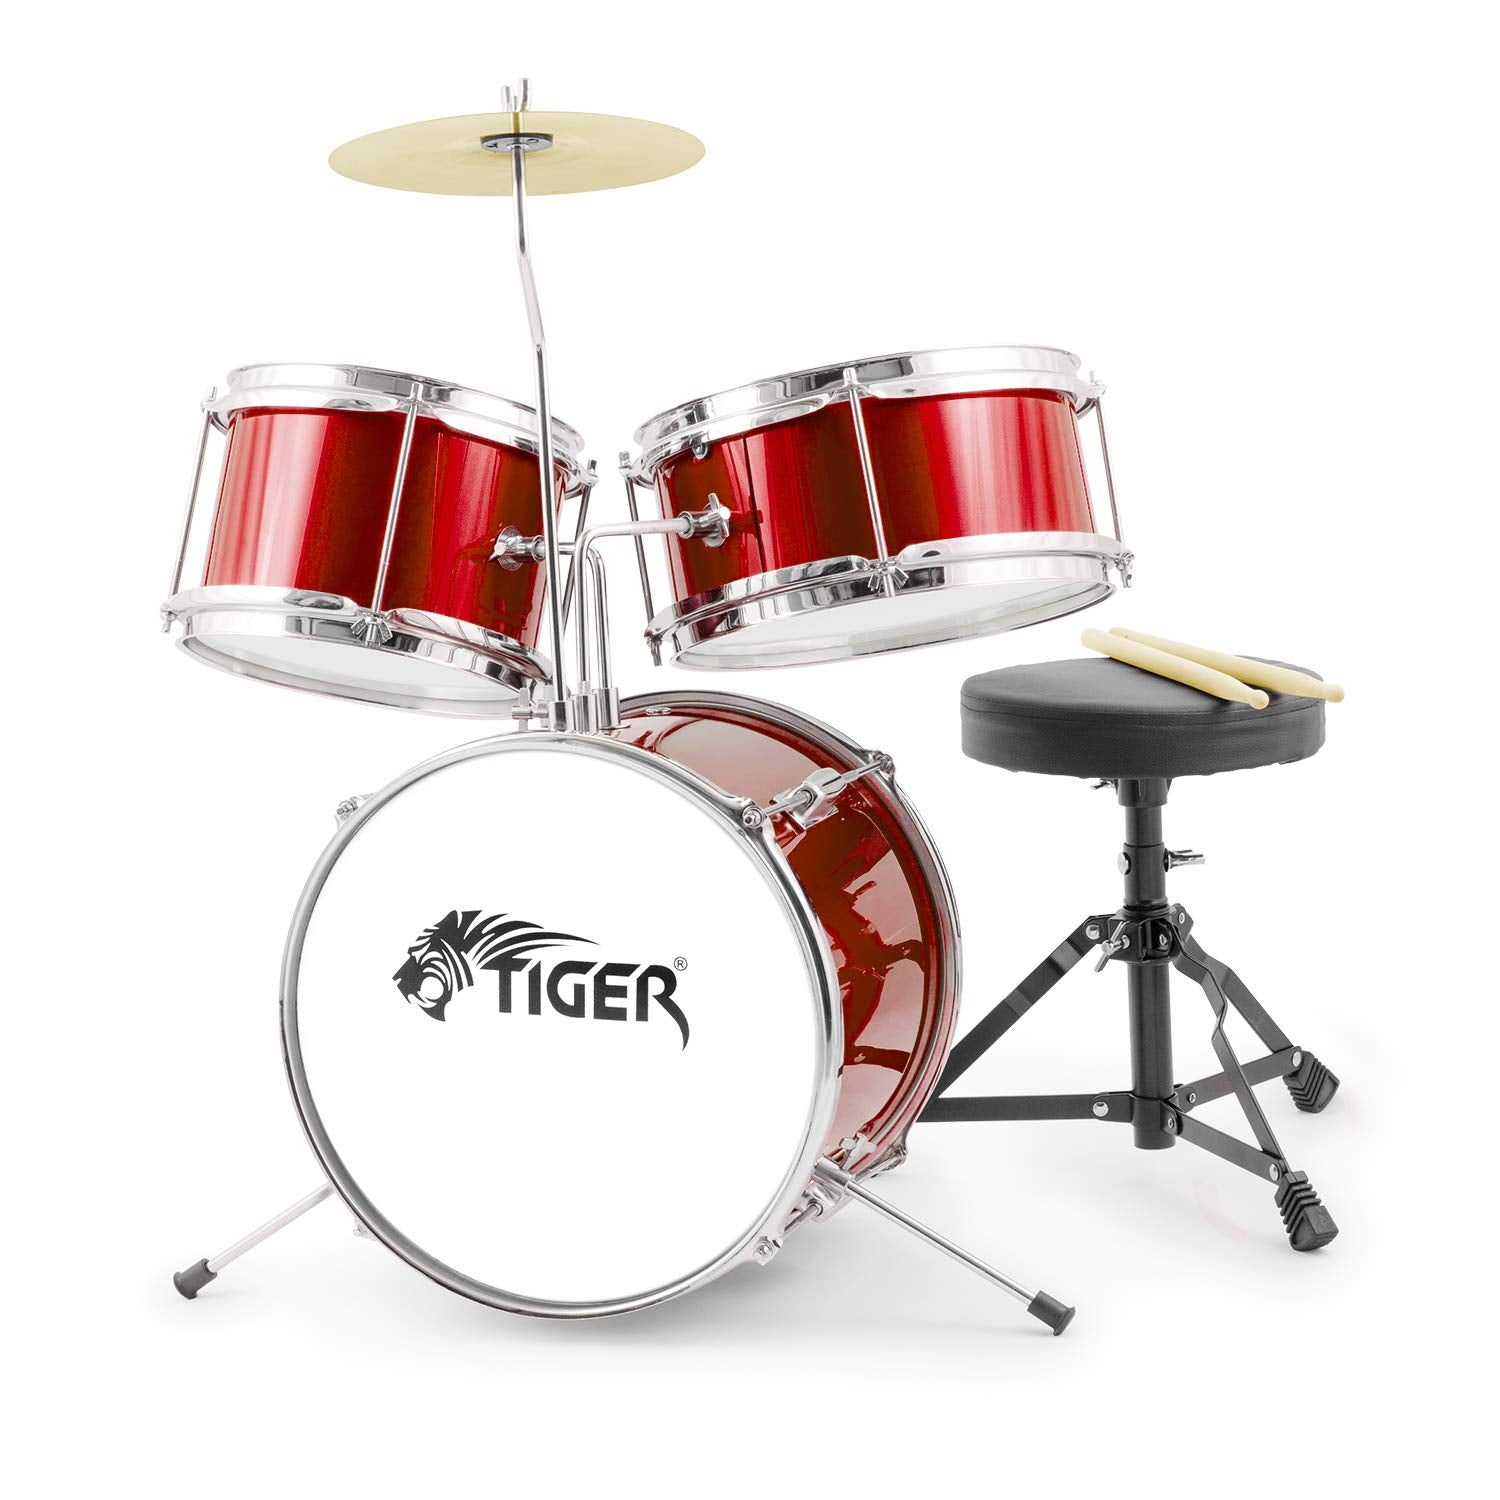 Tiger 3 Piece Junior Drum Kit - Red